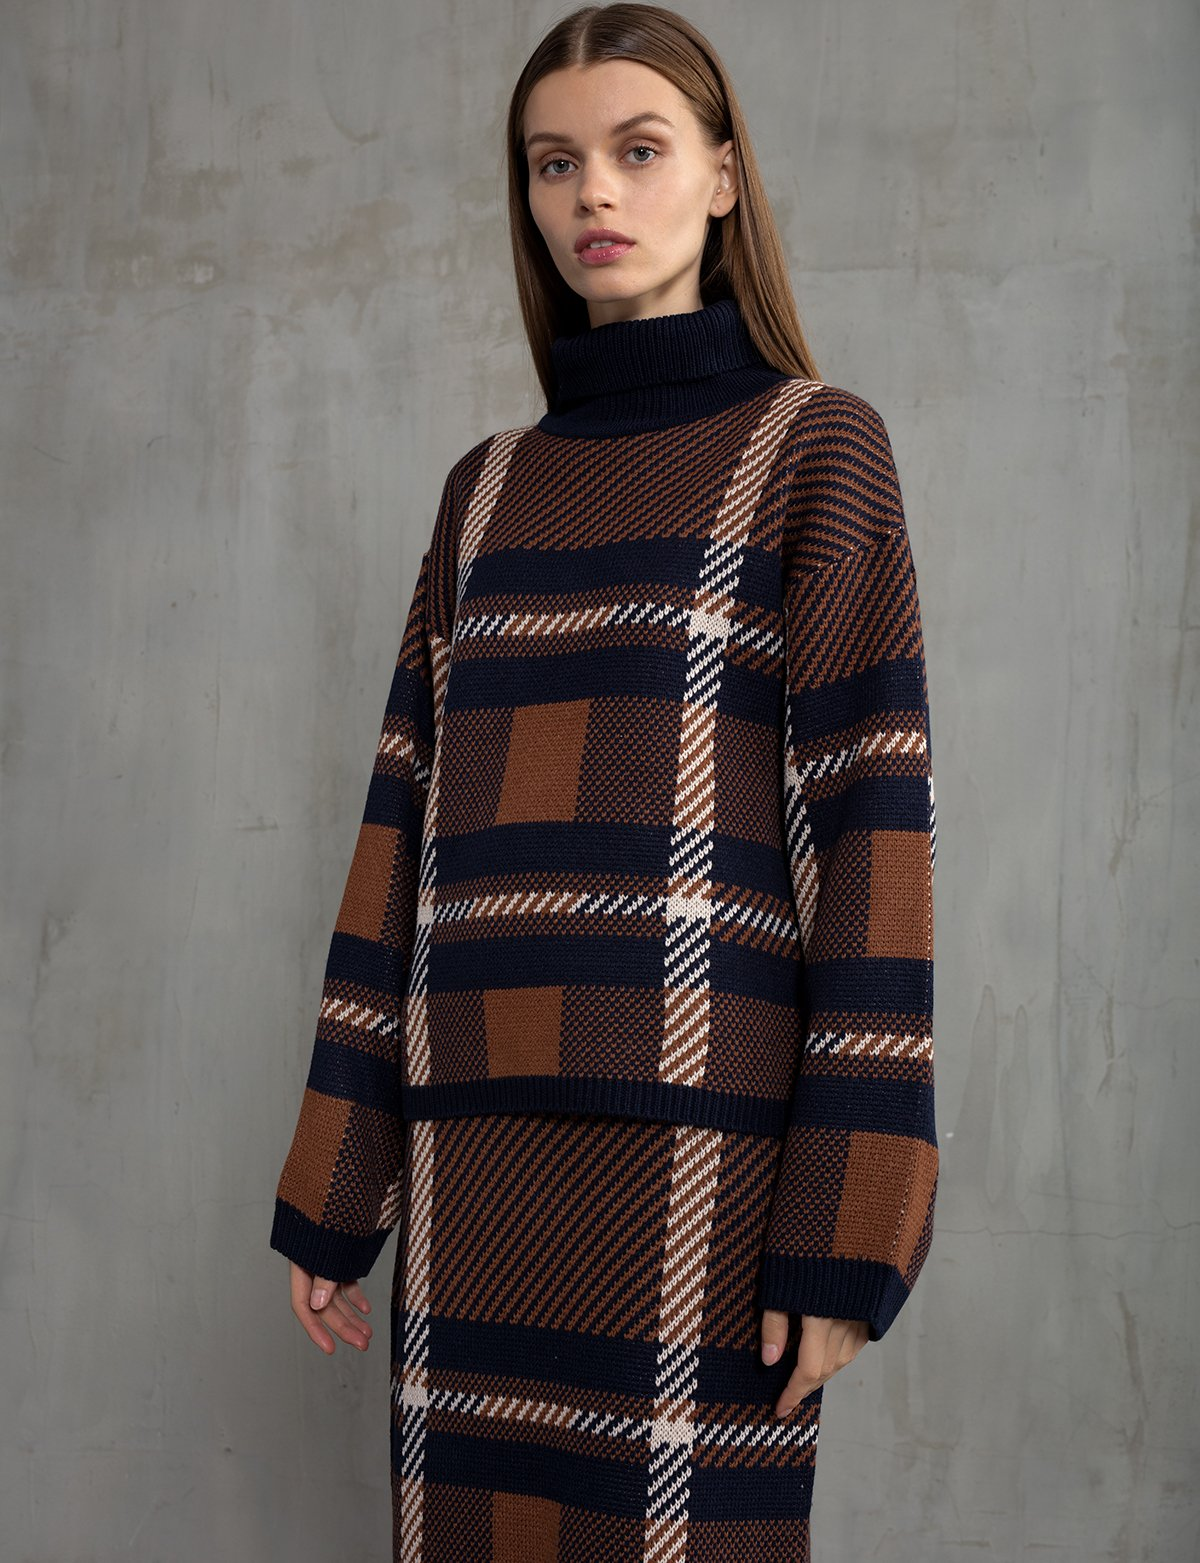 Plaid Matching Skirt and Sweater Set -PREORDER